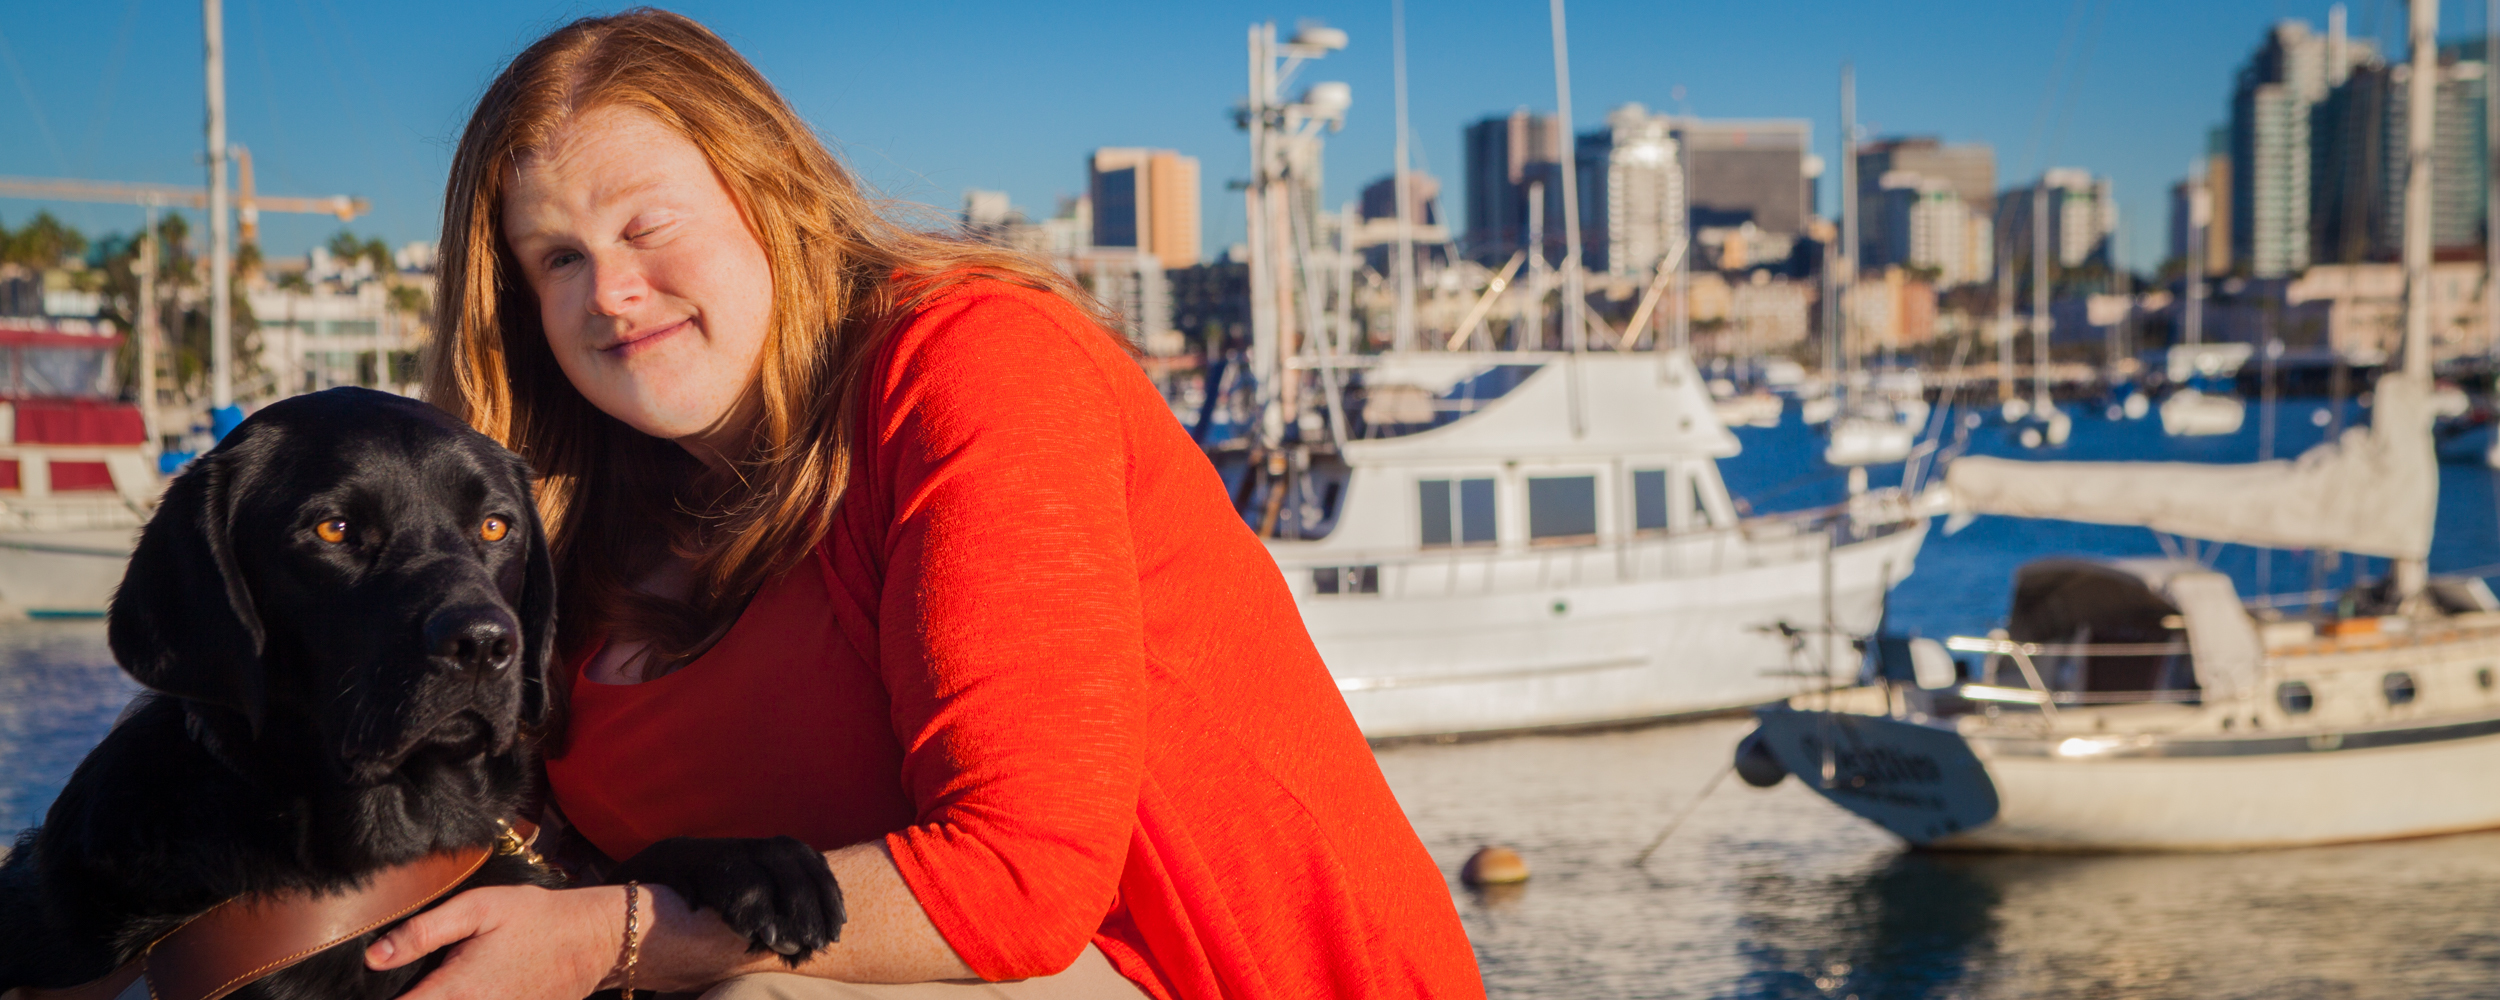 A woman wearing a vibrant red top sitting next to her black Lab guide dog in front of a harbor filled with sailboats.